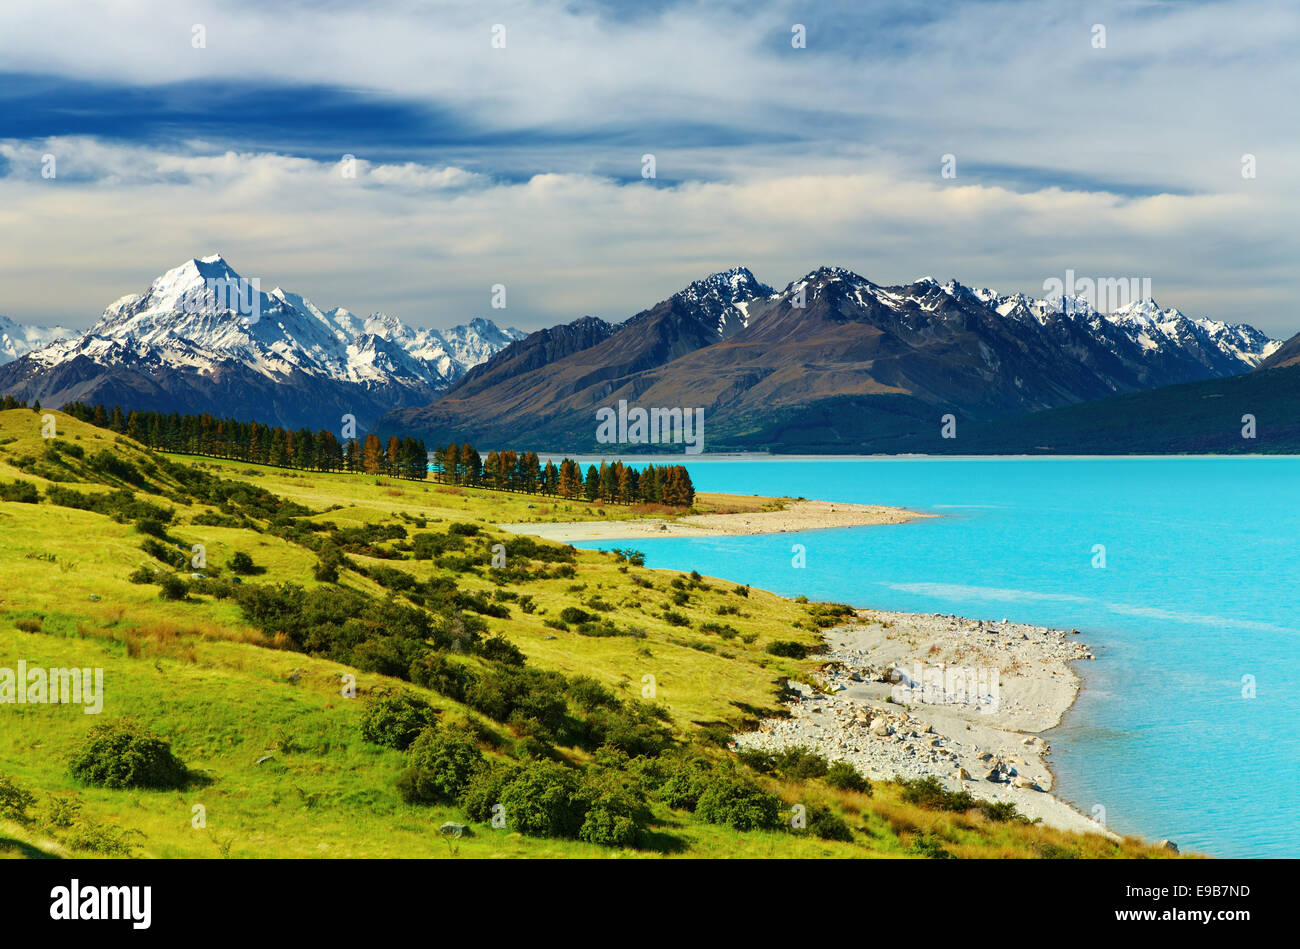 Mount Cook und Pukaki Lake, New Zealand Stockbild